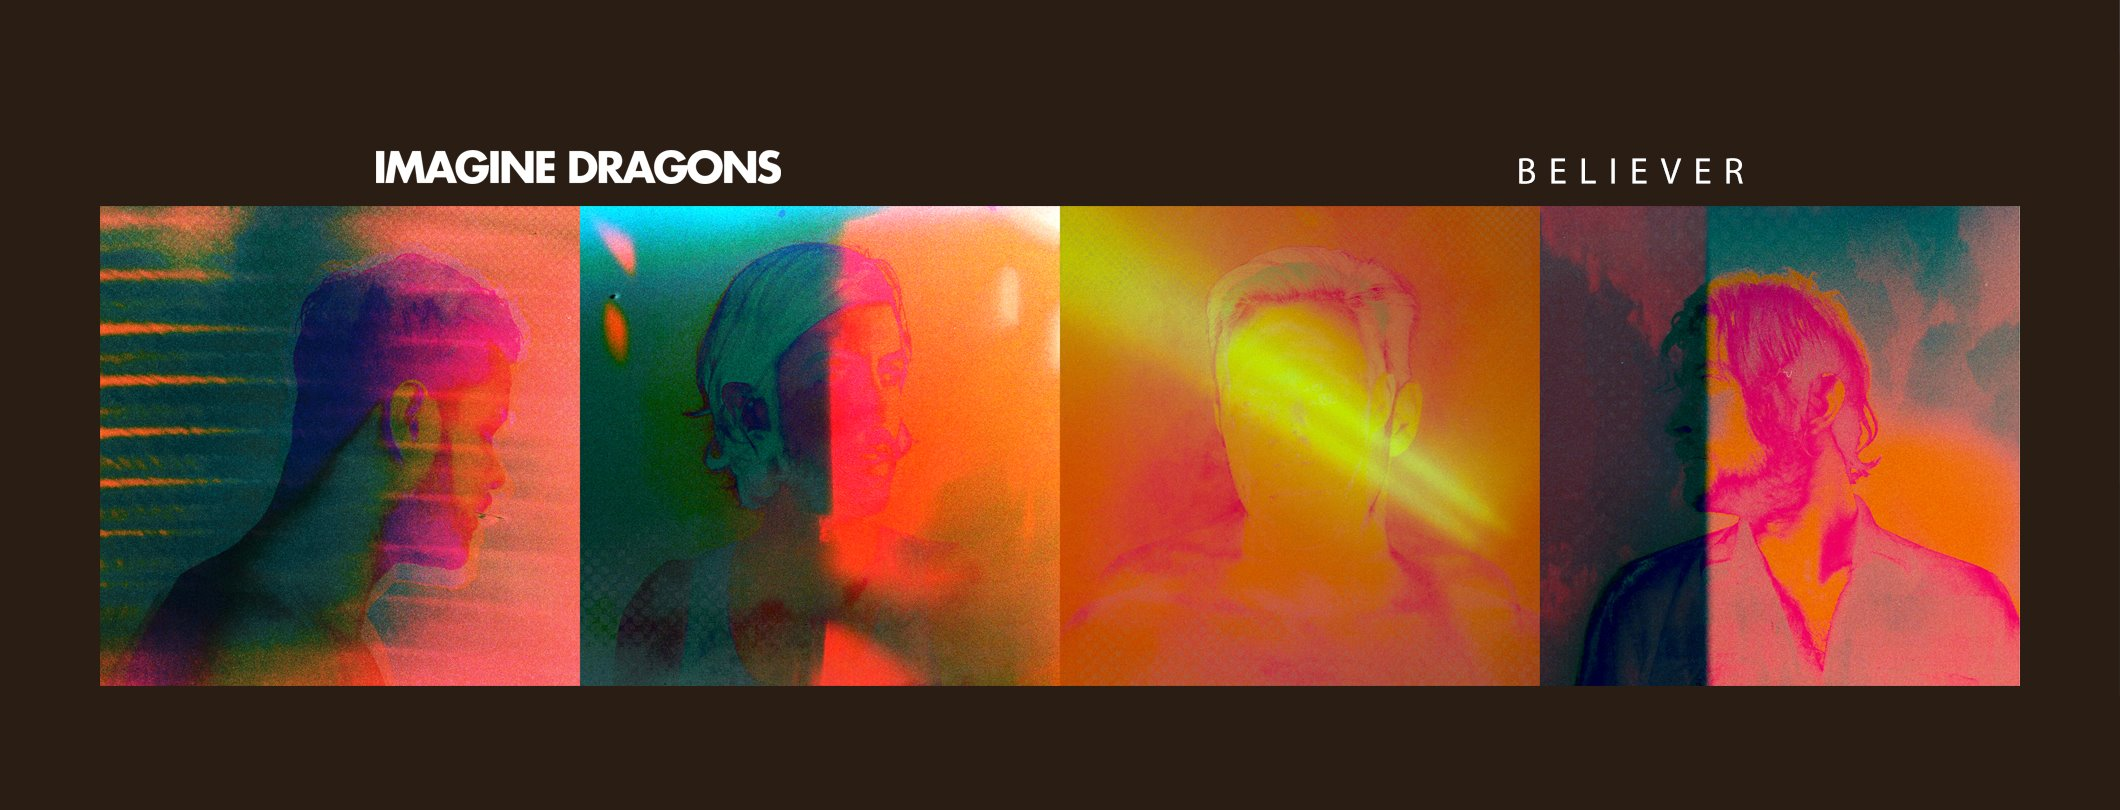 imagine_dragons_believer